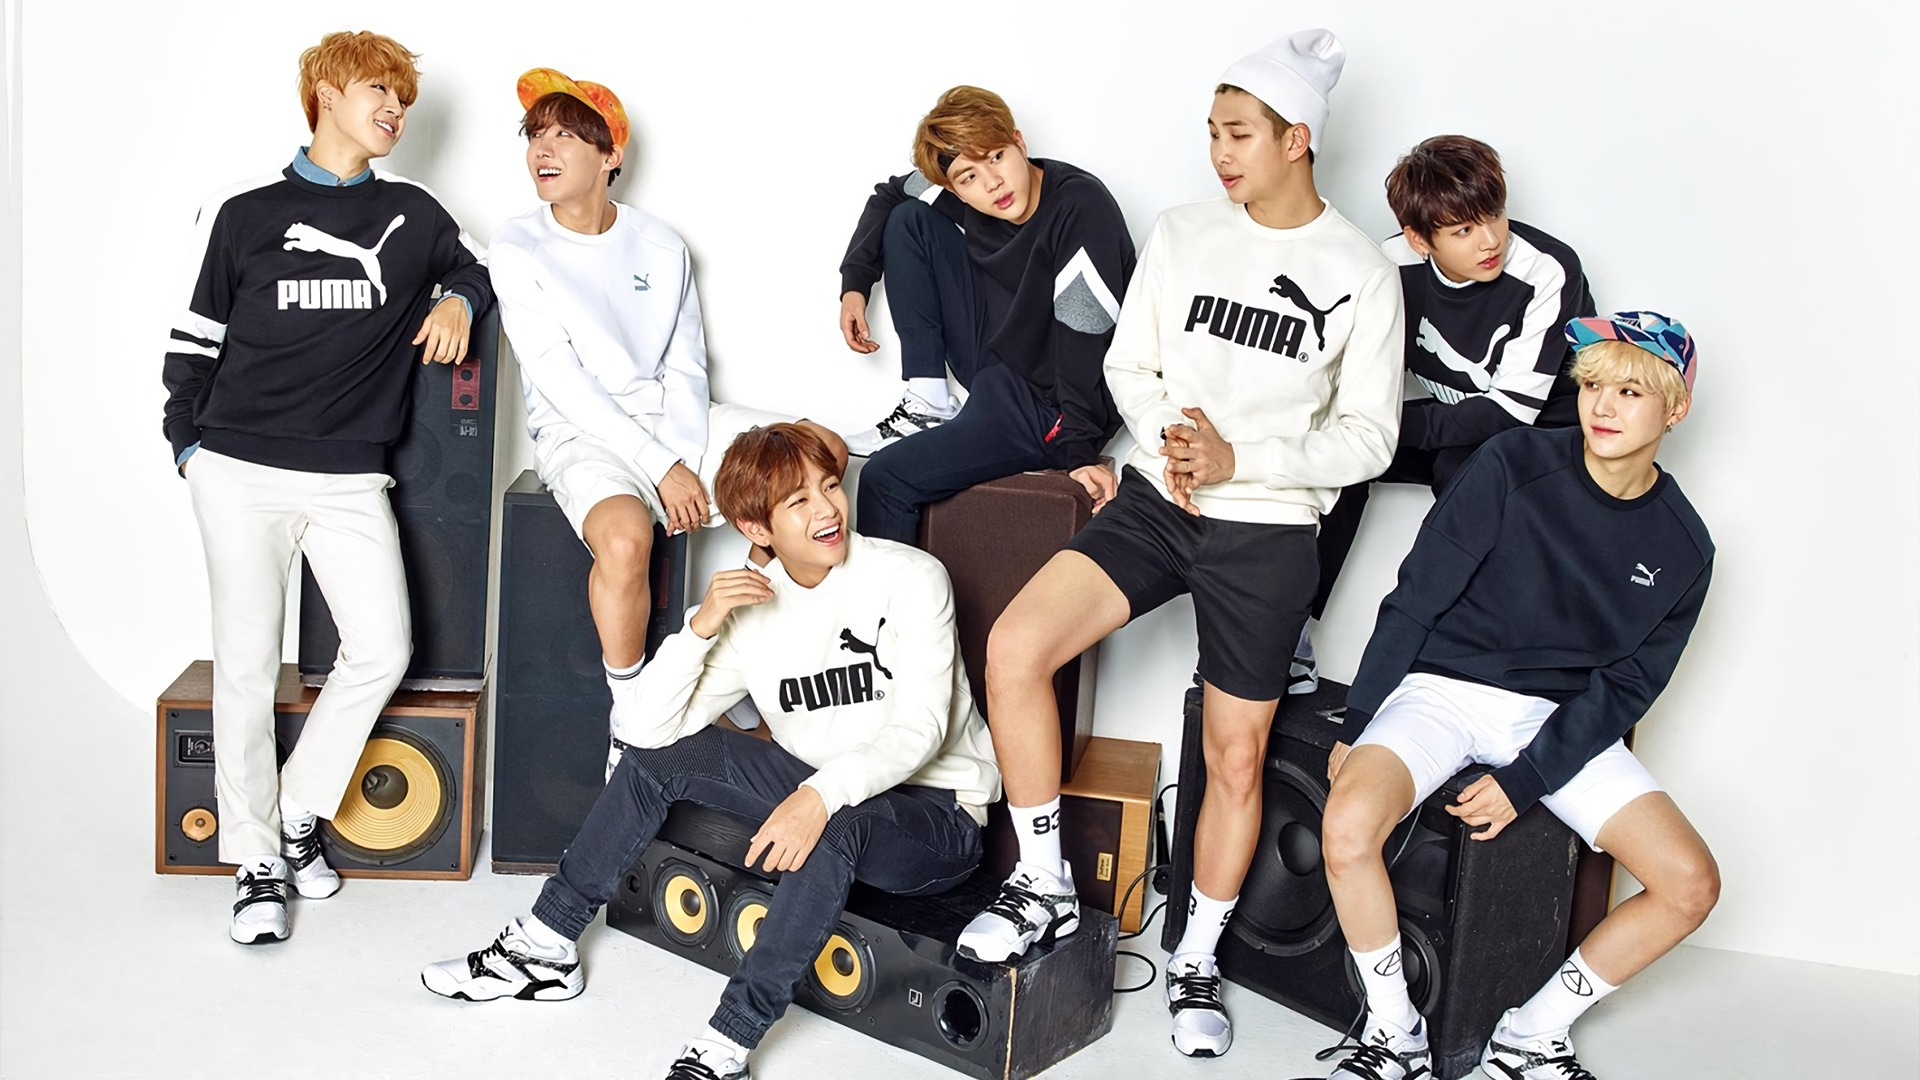 Bts Laptop Wallpapers Top Free Bts Laptop Backgrounds Wallpaperaccess Find hd wallpapers for your desktop, mac, windows, apple, iphone or android device. bts laptop wallpapers top free bts